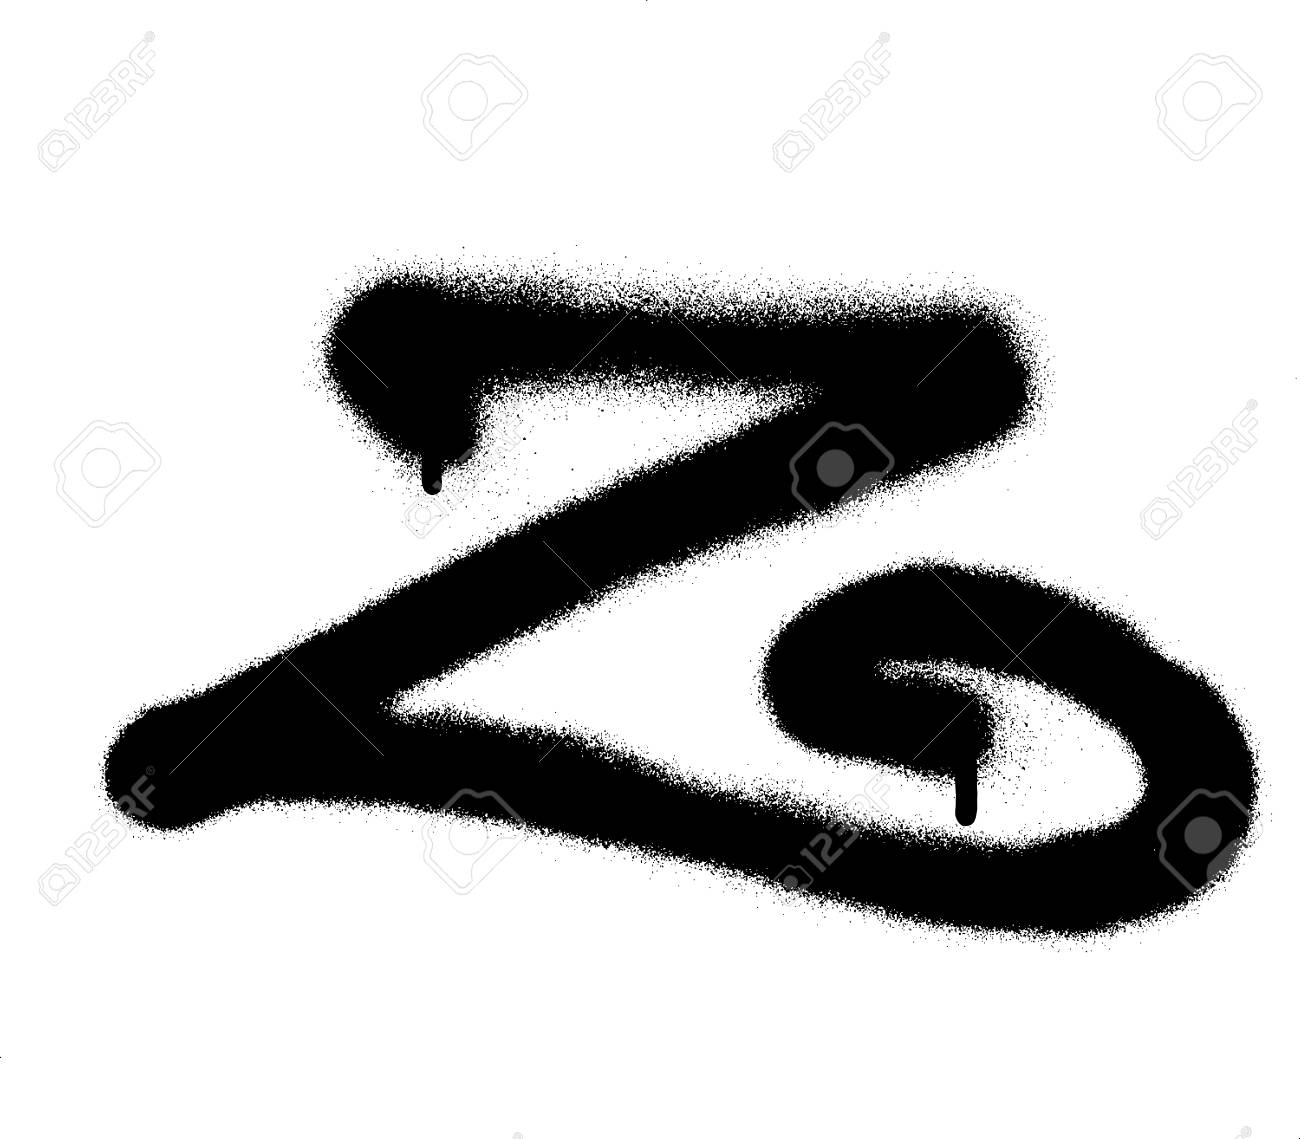 Sprayed curly z font graffiti with leak in black over white stock vector 83221141